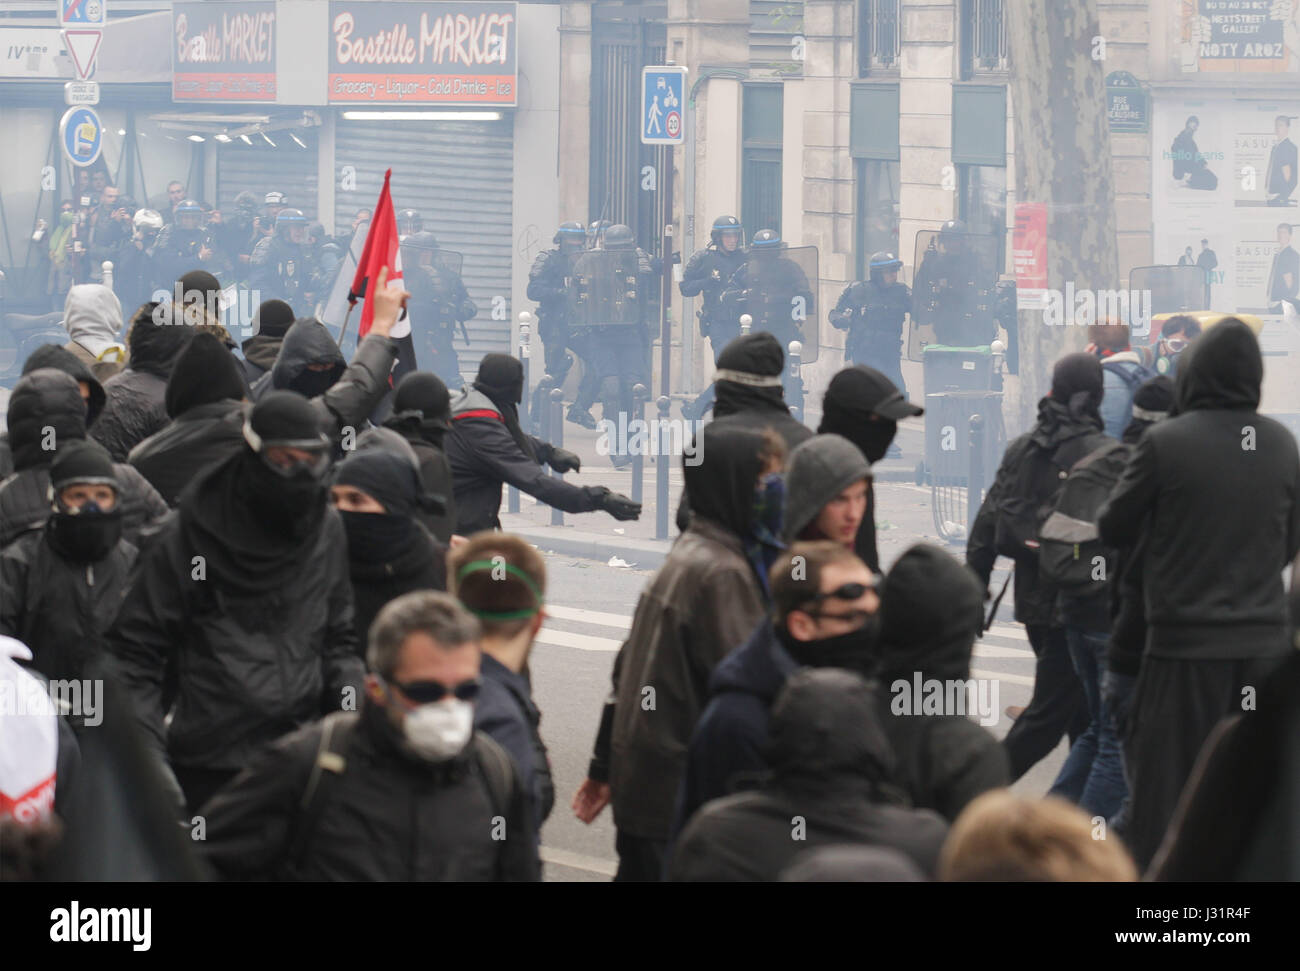 Paris, France. 1st May, 2017. Protester face French anti-riot police during a march for the annual May Day workers' rally in Paris on May 1, 2017. Credit: VWPics/Alamy Live News Stock Photo